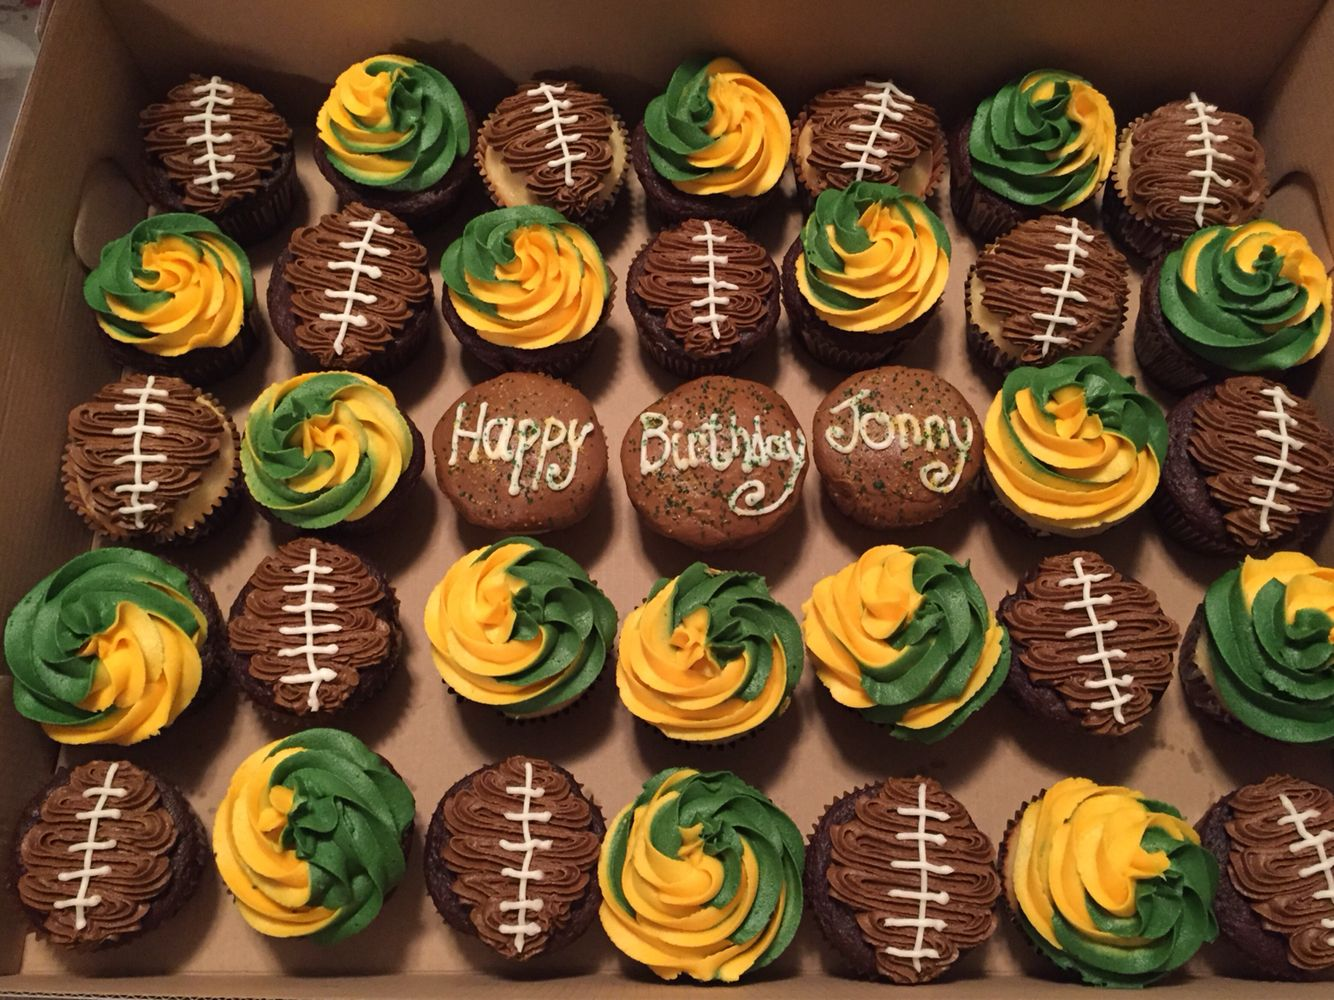 19f6b9cb8 Green Bay Packers cupcakes for a birthday. Chocolate and vanilla cupcakes  with chocolate (the footballs) and vanilla buttercream frosting.